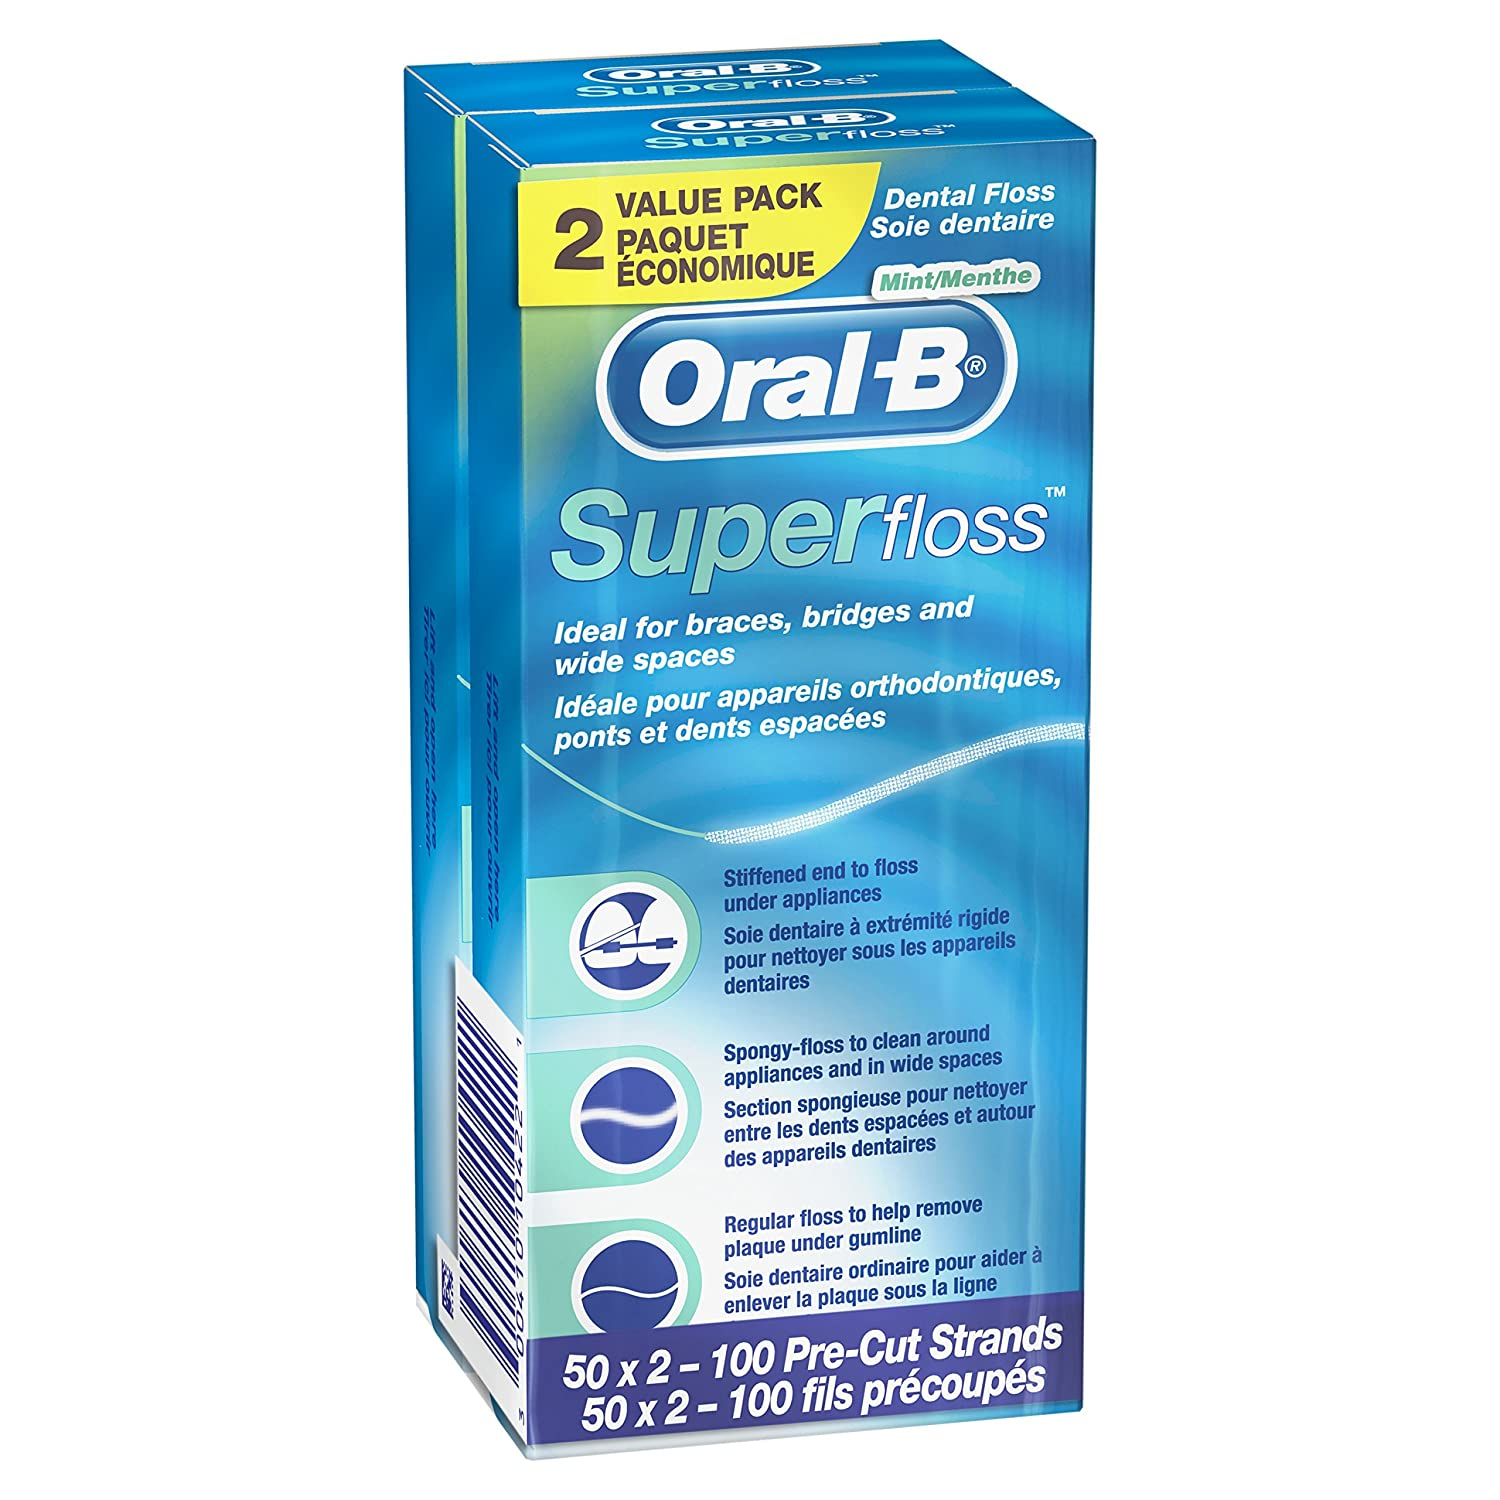 Oral-B Super Floss Pre-Cut Strands